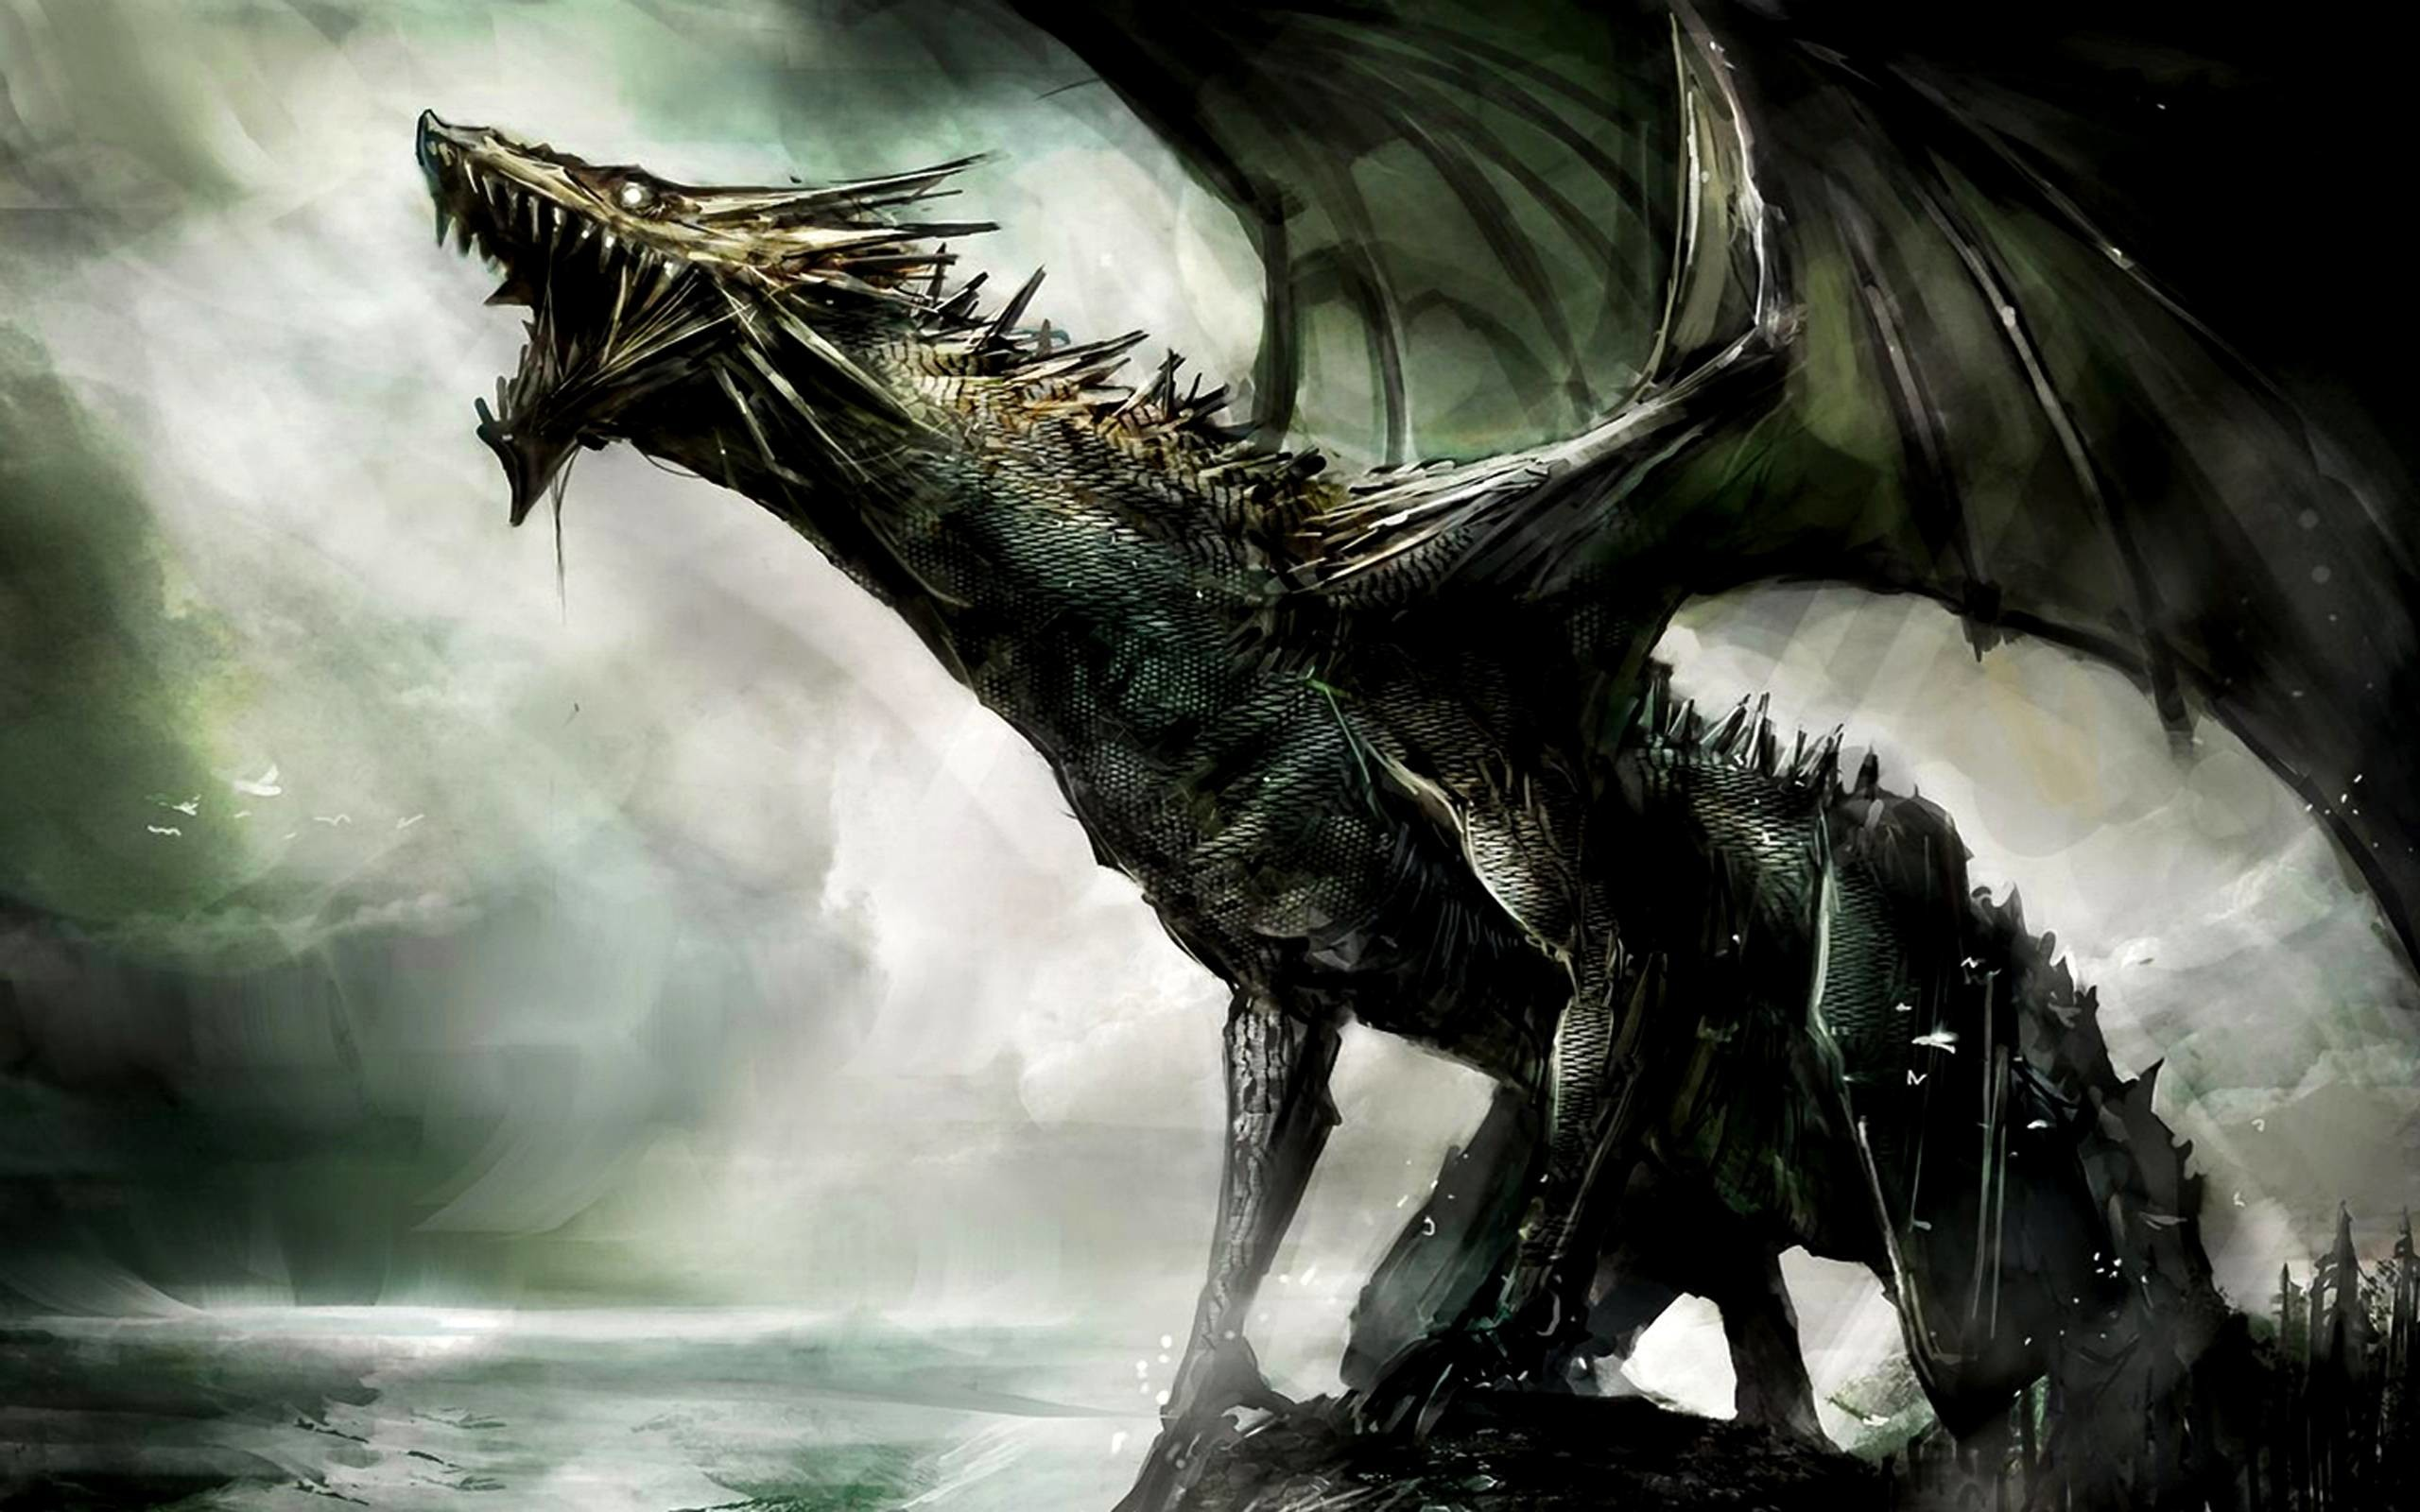 2560x1600 Dragon-Wallpaper-Download.Jpg - Kupang News